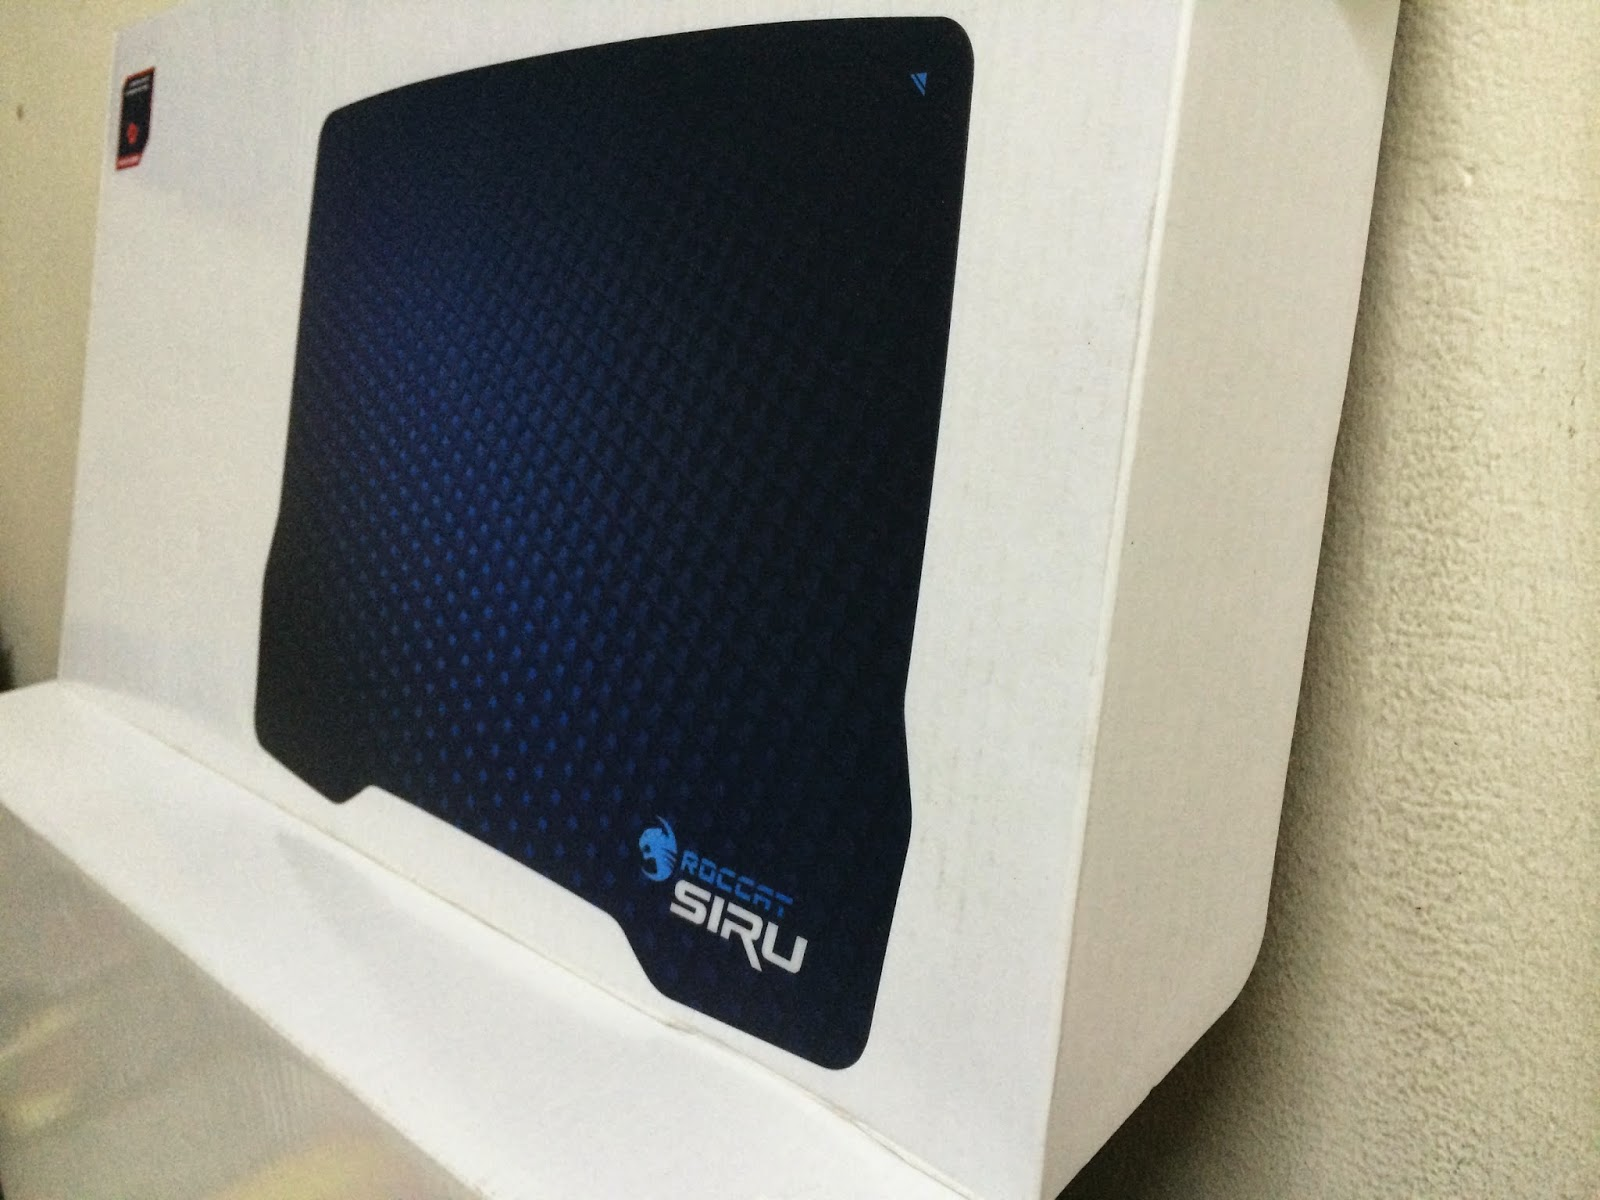 Unboxing & Review - ROCCAT SIRU 37